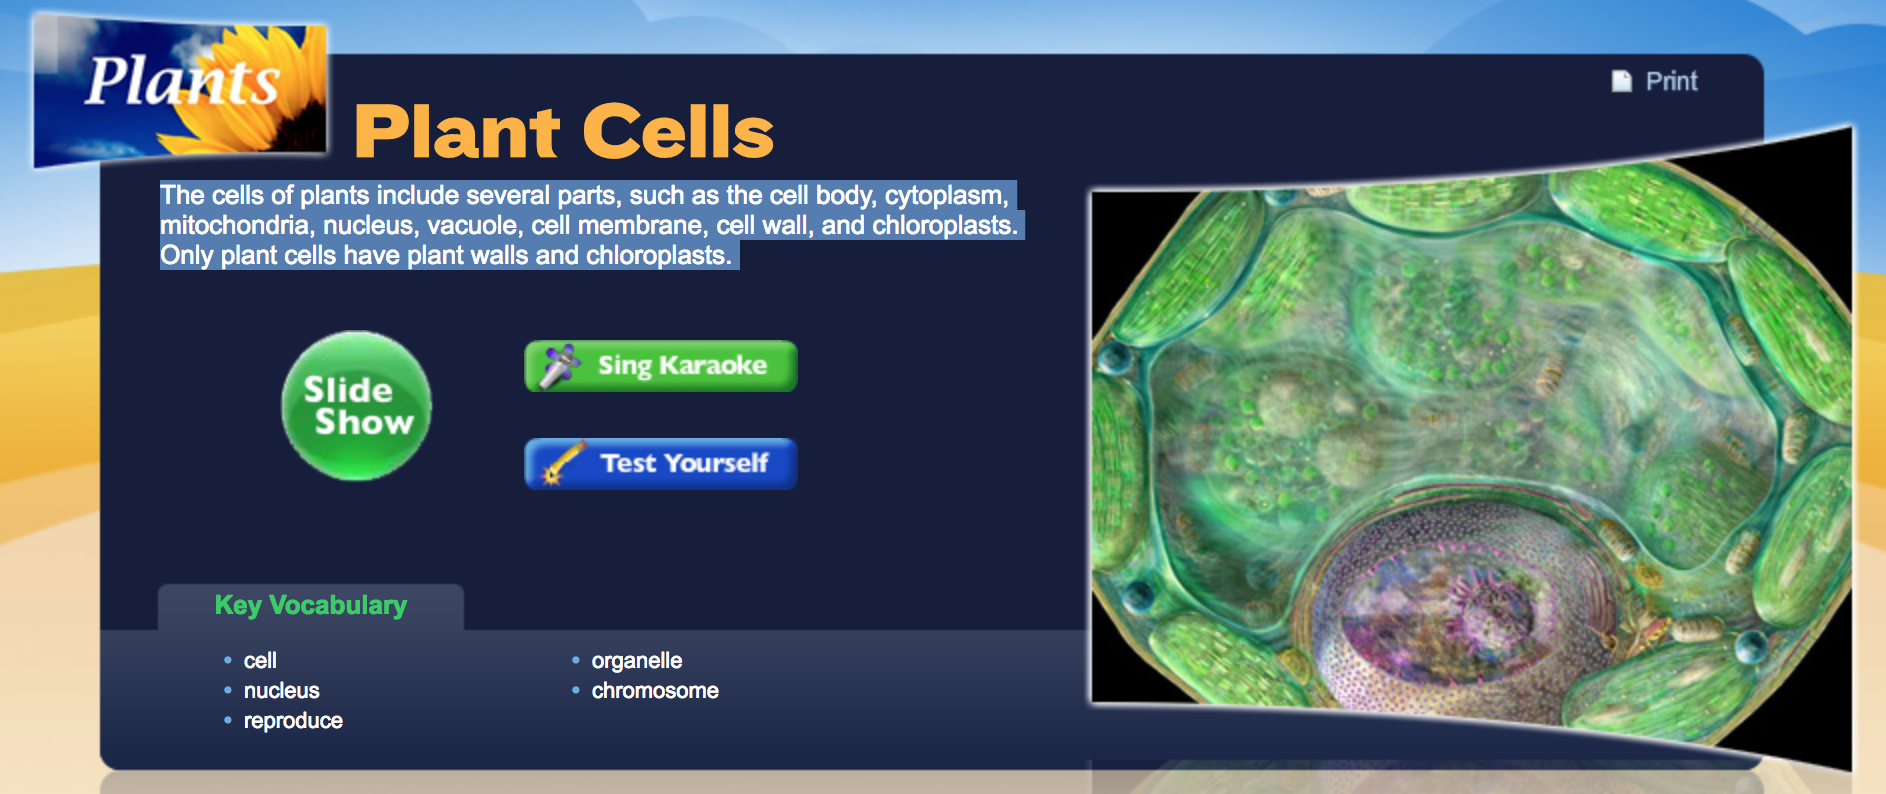 A Free Slide Show And Quiz On Plant Cells  Appropriate For